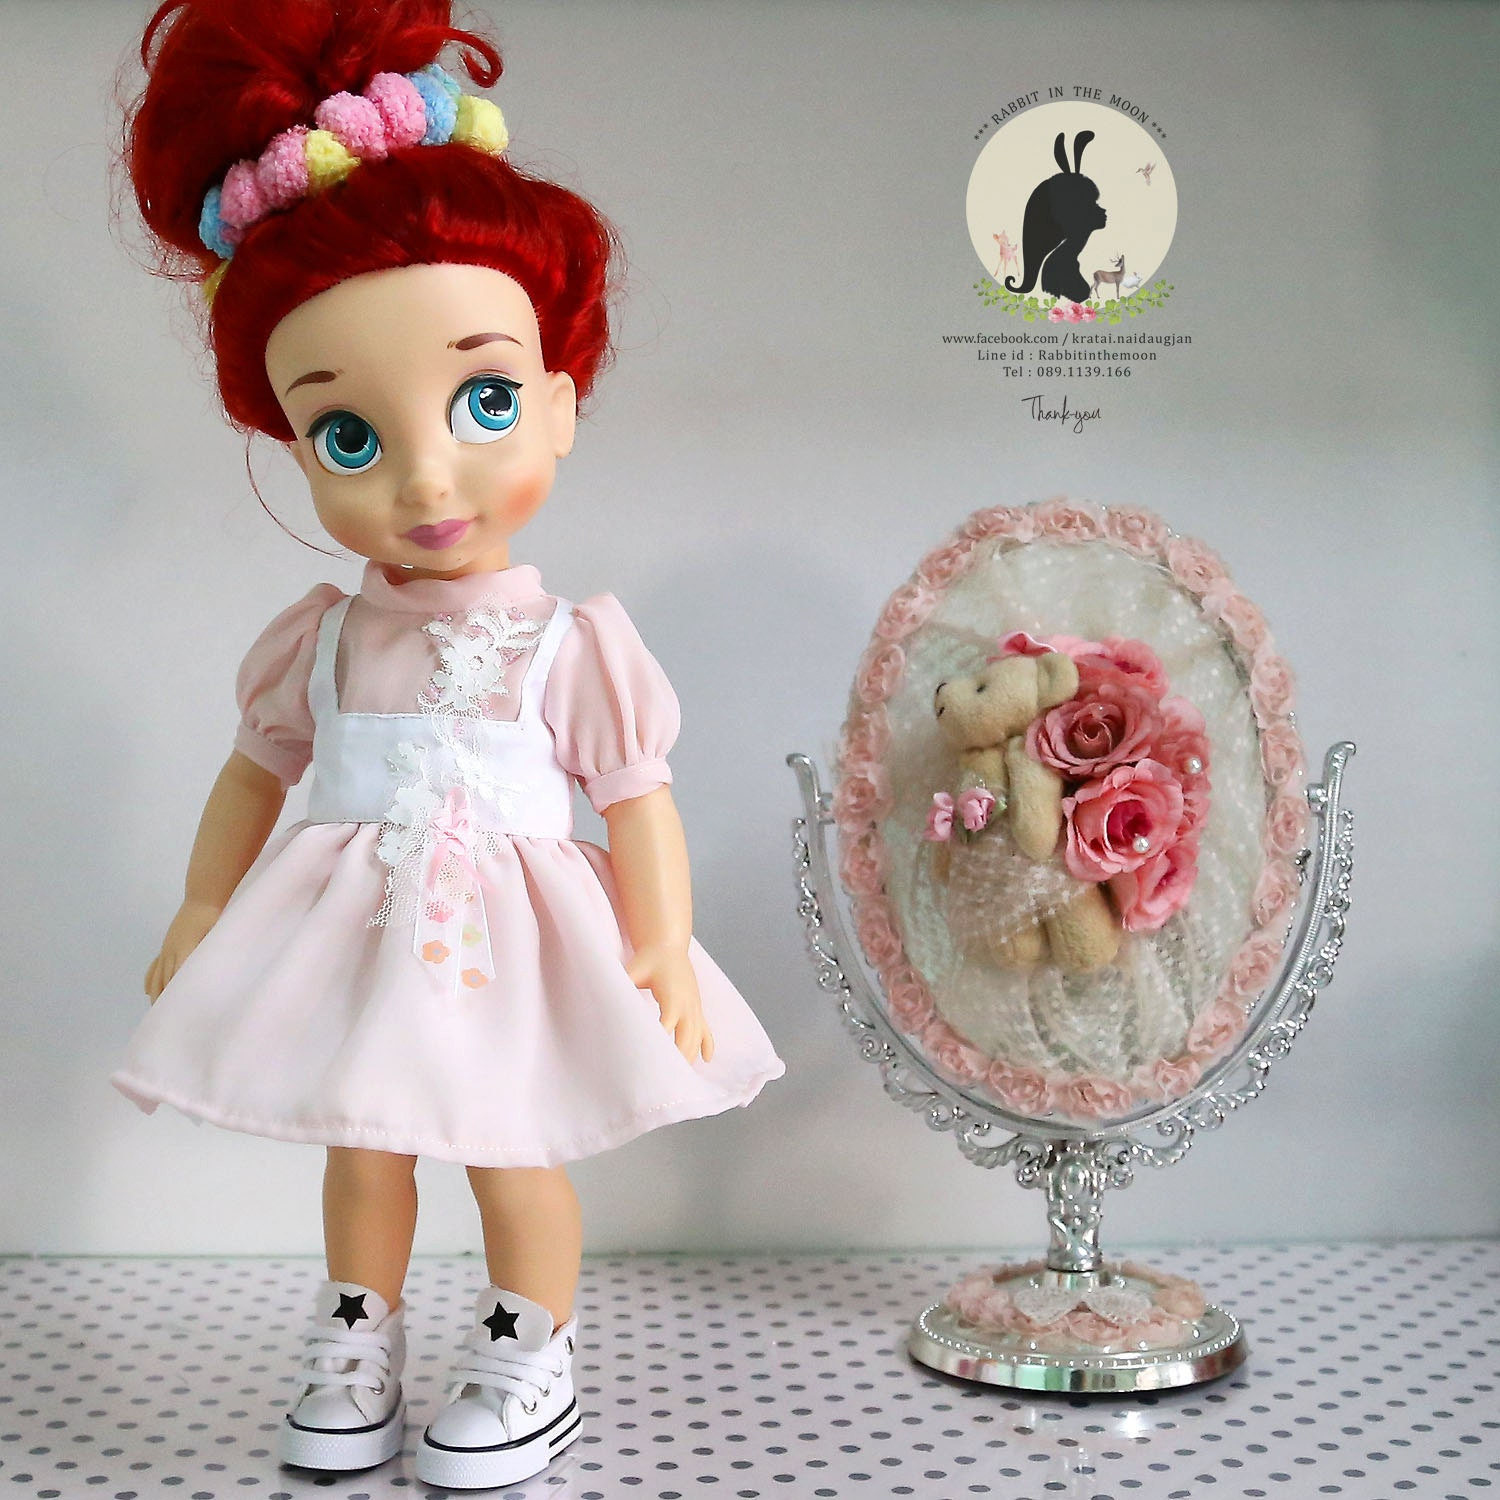 Disney Princess Doll Clothes: Unavailable Listing On Etsy